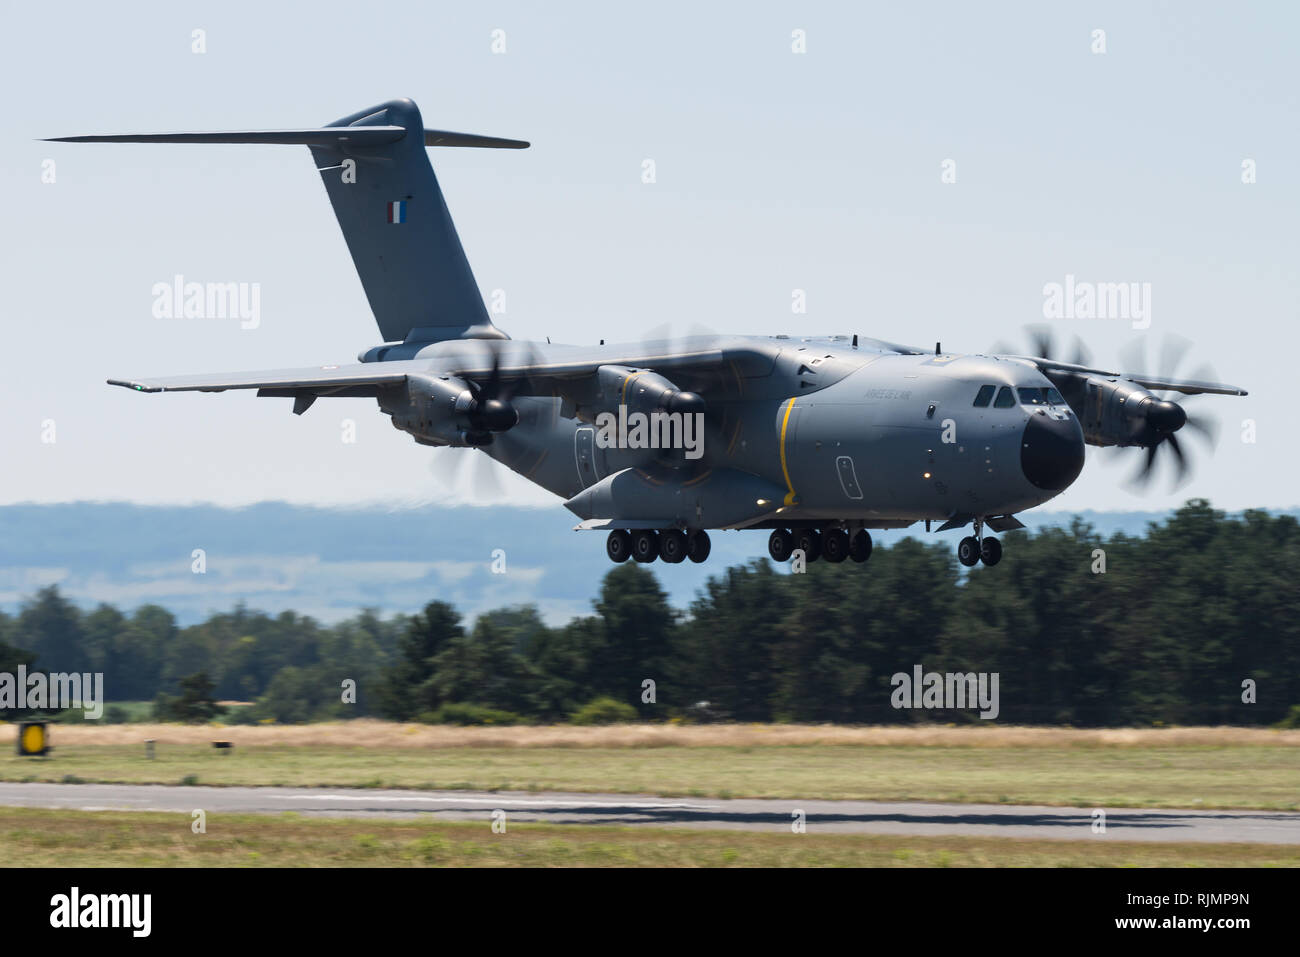 An Airbus A400M Atlas military transport aircraft of the French Air Force at the Base aérienne 133 Nancy-Ochey. - Stock Image